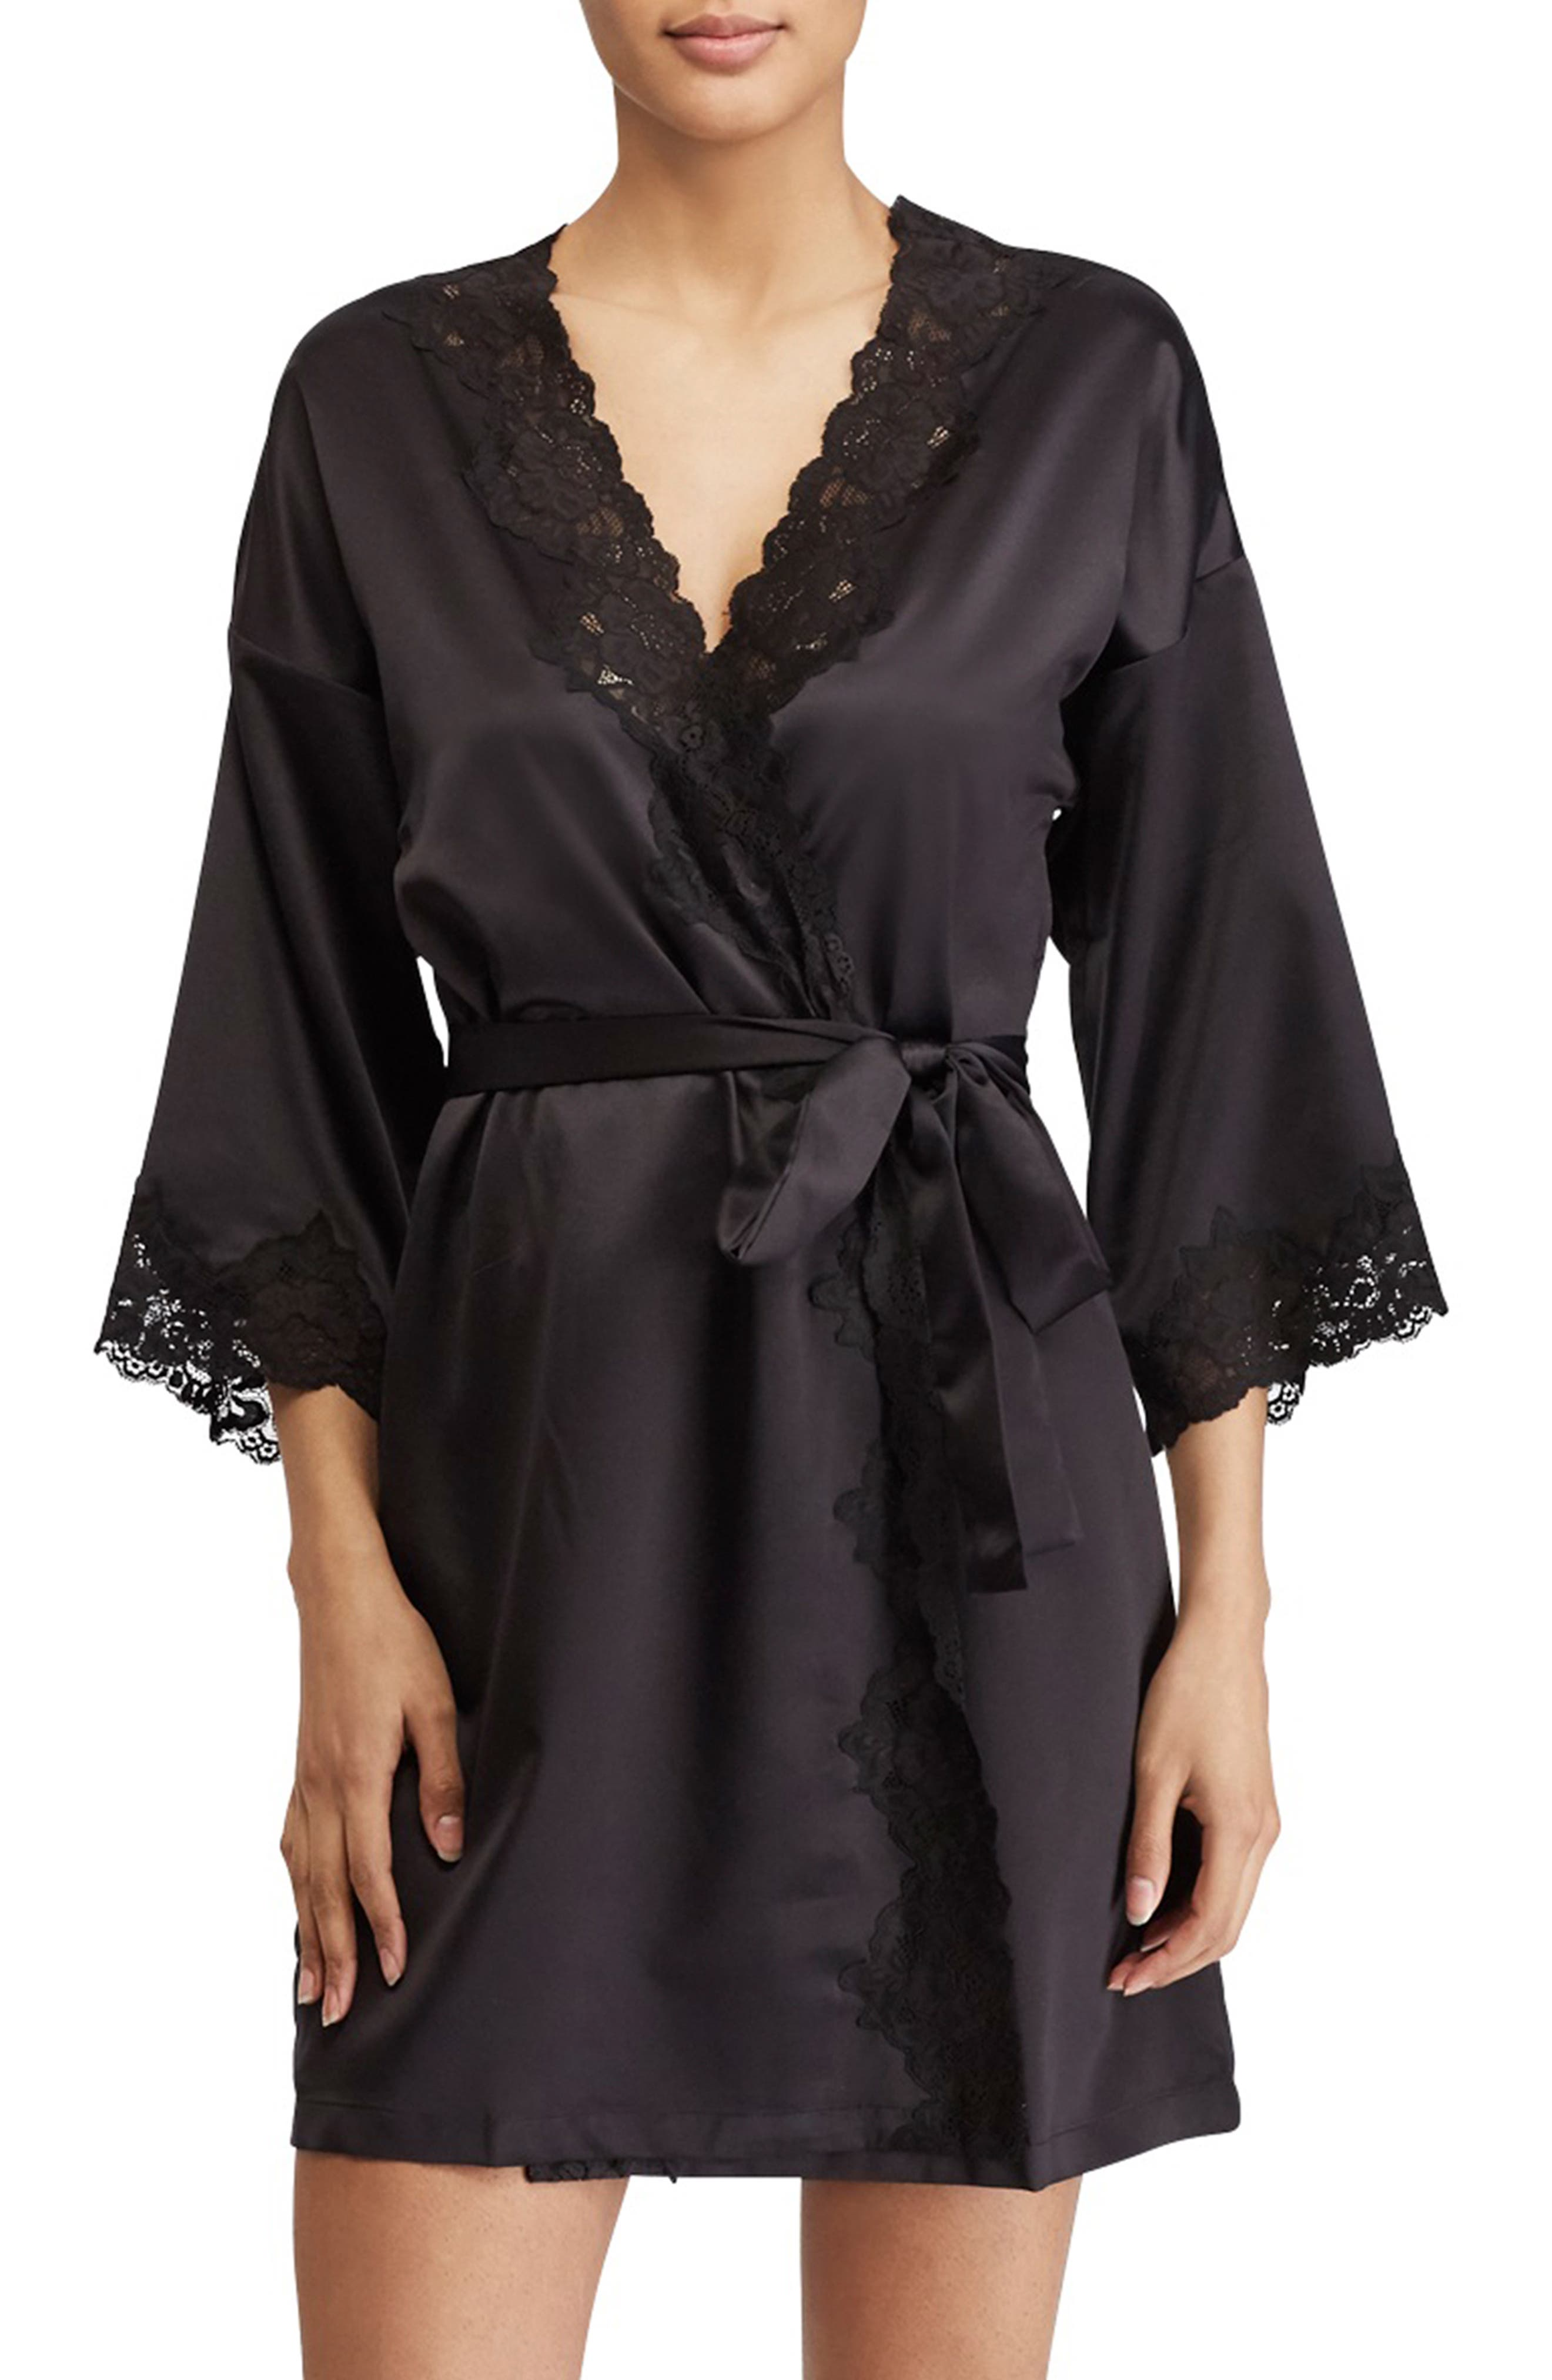 LAUREN RALPH LAUREN, Lace Trim Satin Robe, Main thumbnail 1, color, BLACK